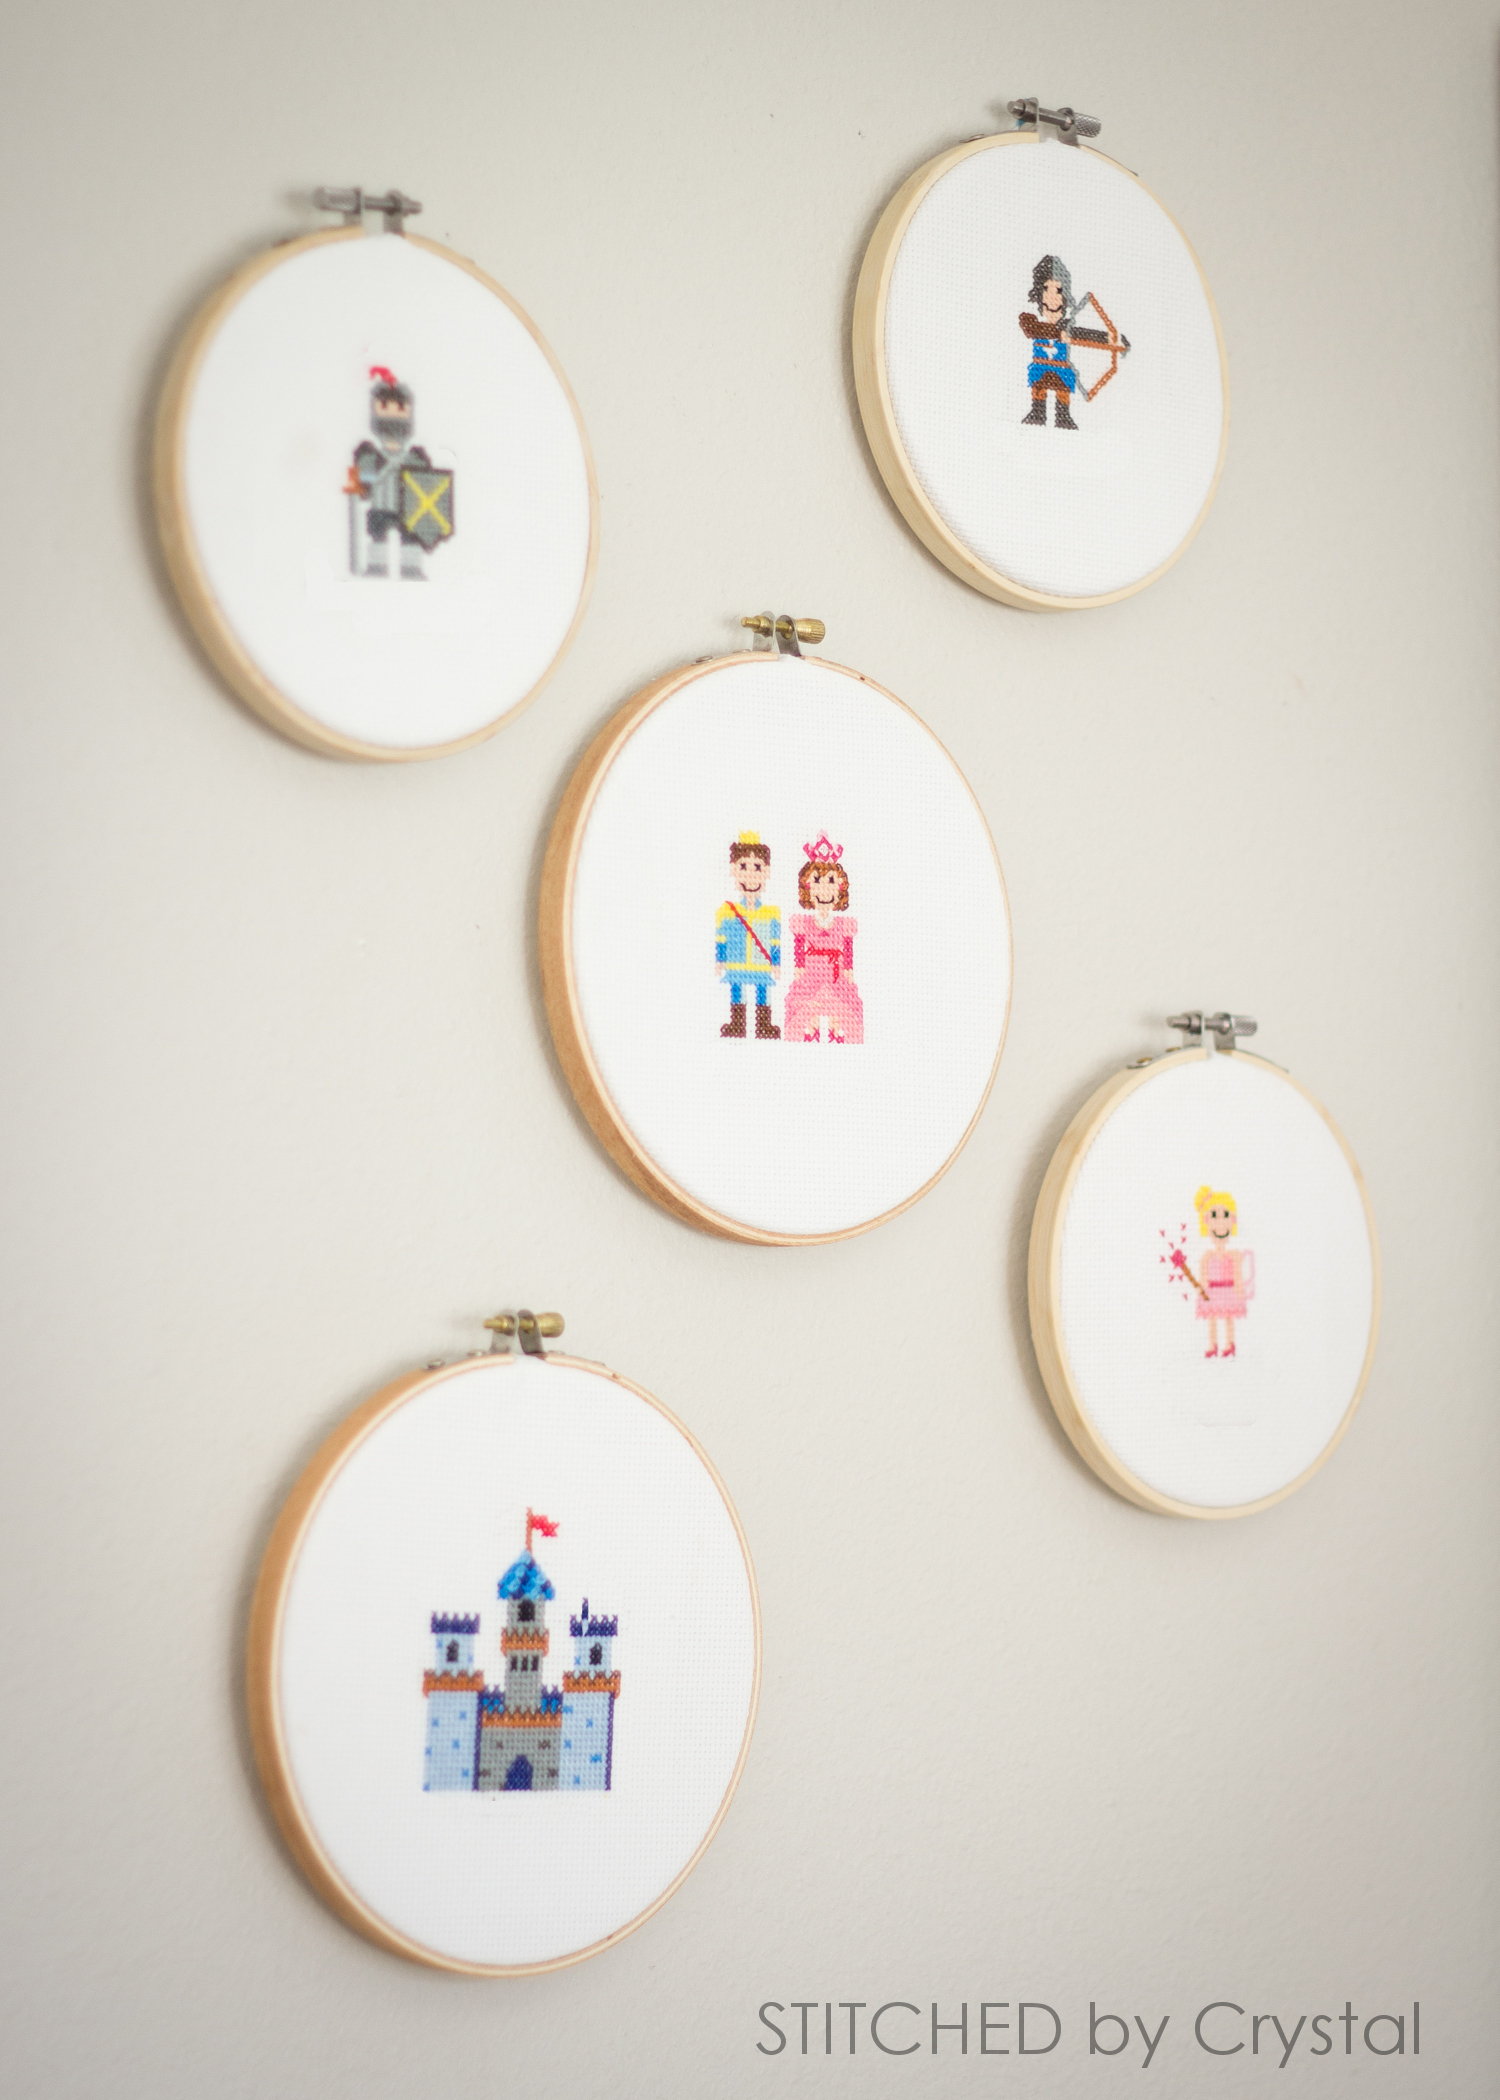 King, Queen, Princess, Knight and Castle Cross Stitch Patterns